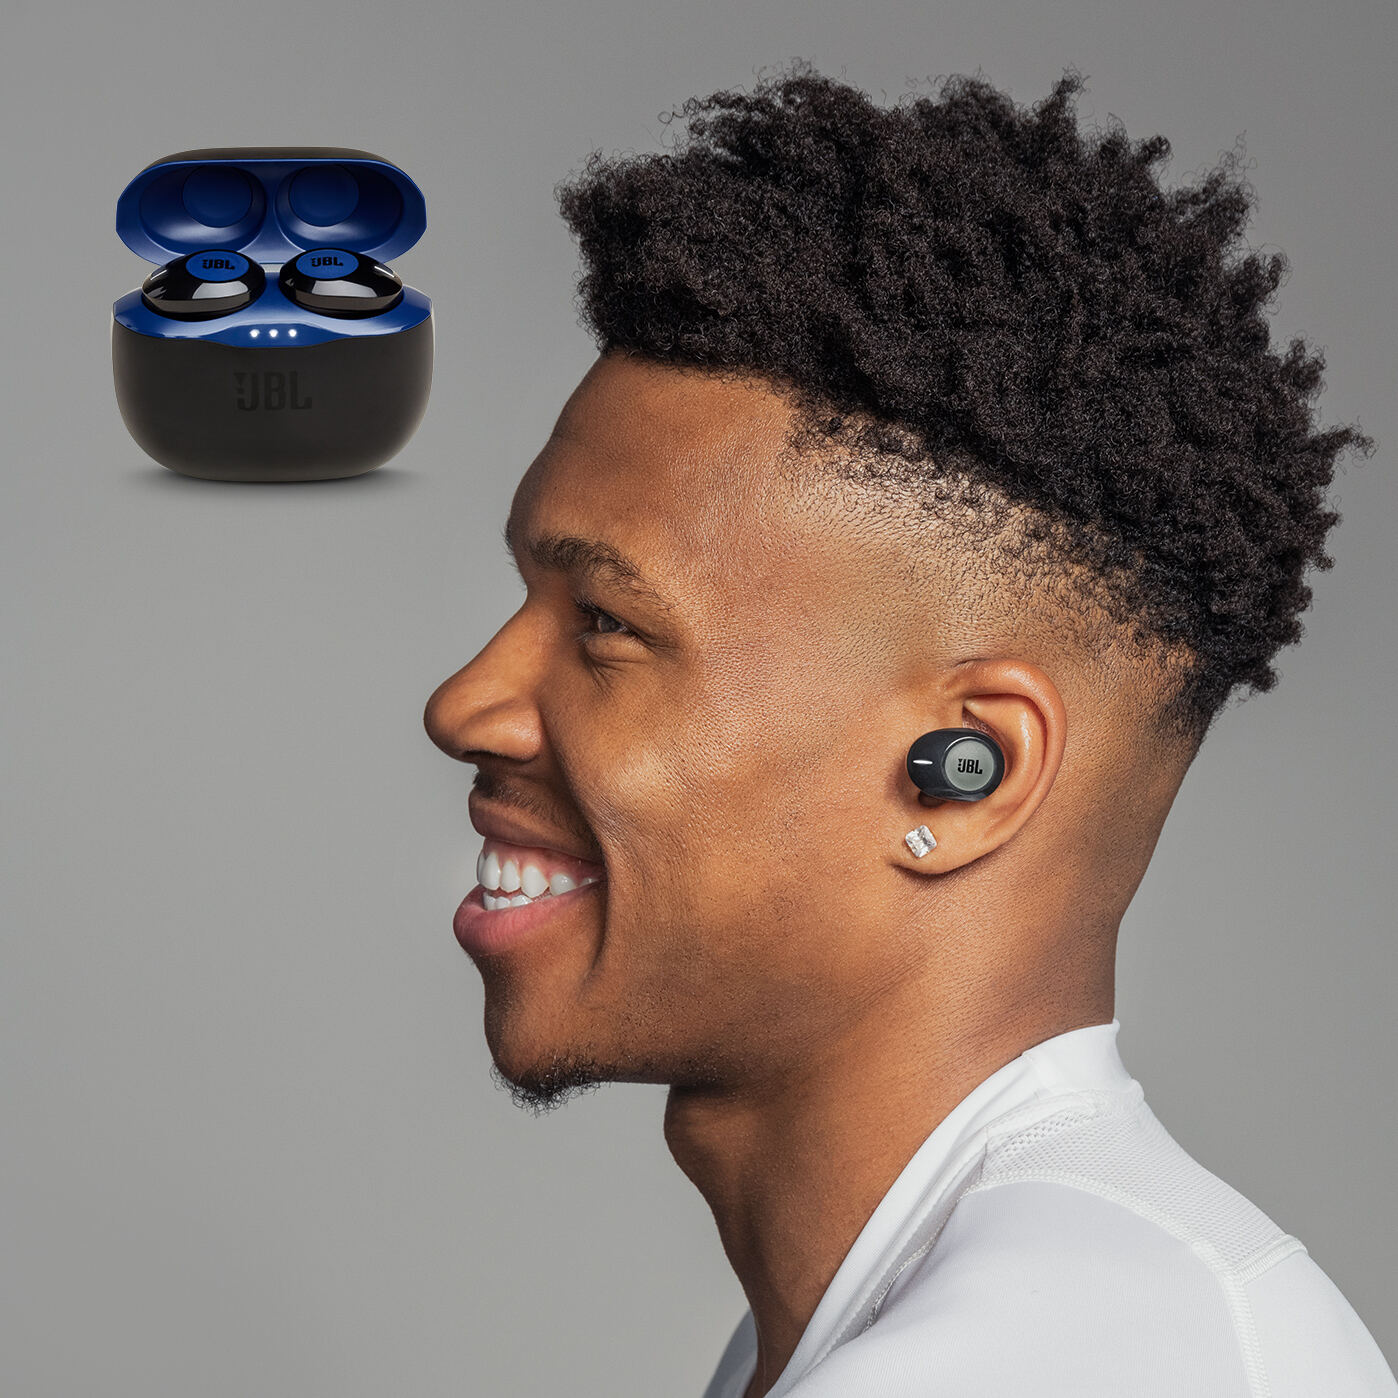 thumbnail JBL Wireless Earbuds